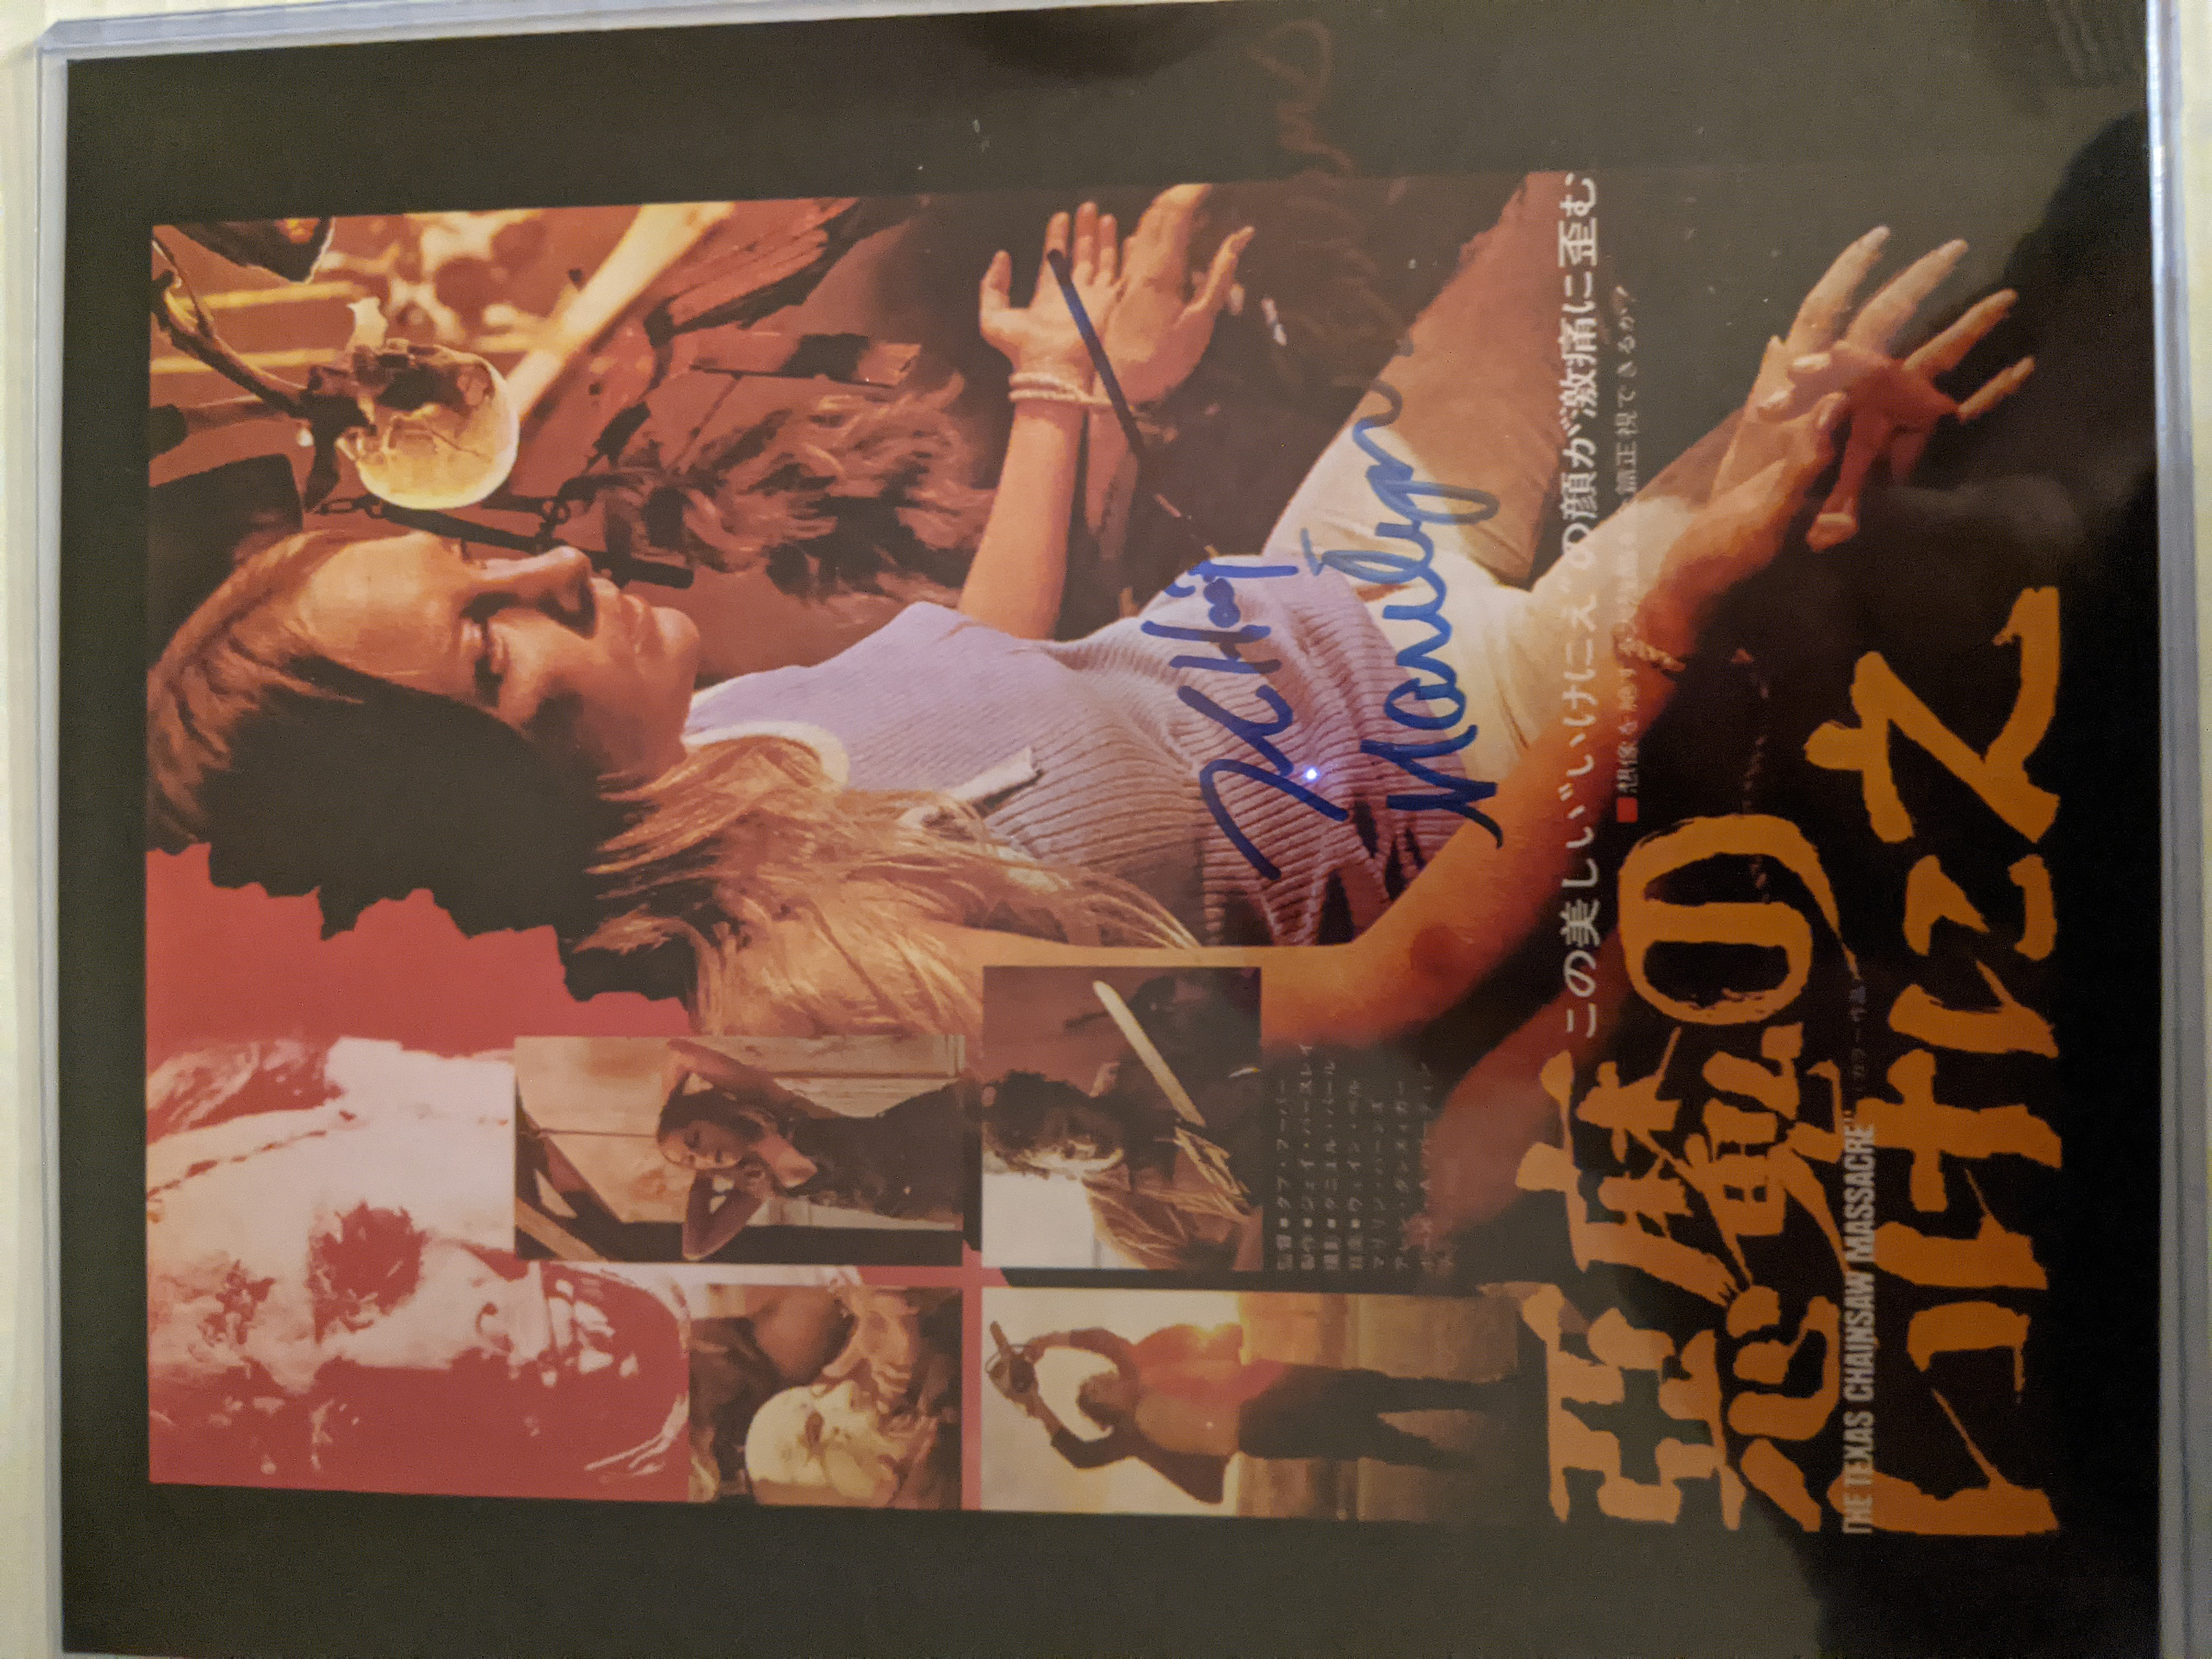 Texas Chainsaw Masacre Autographed by Tobe Hooper & Marilyn Burns